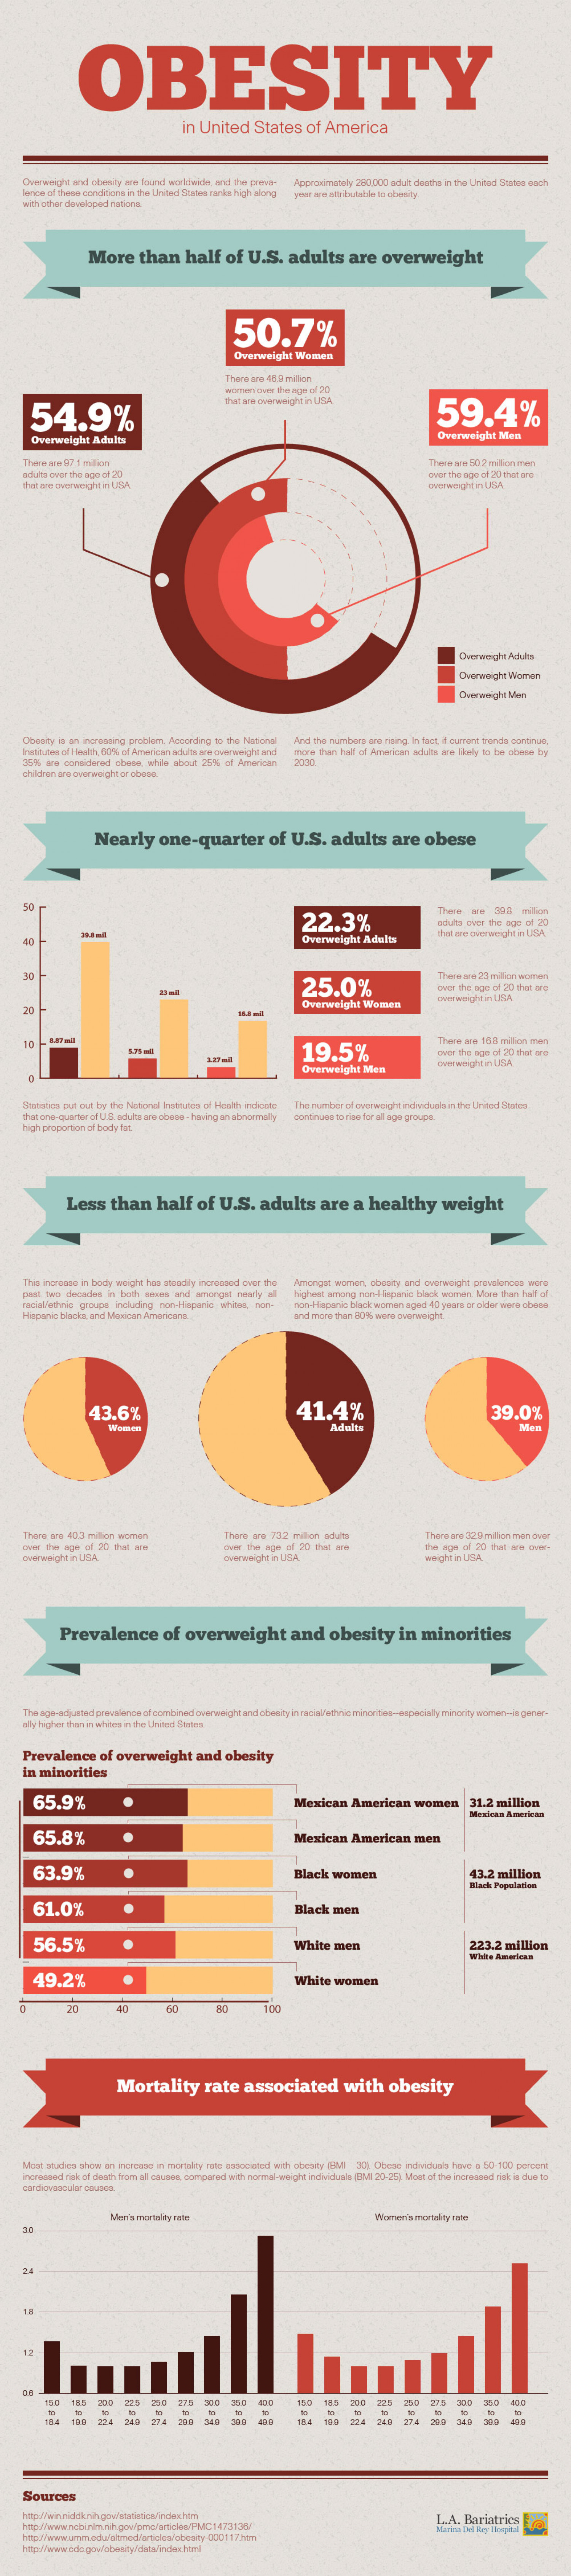 Obesity In the United States Infographic